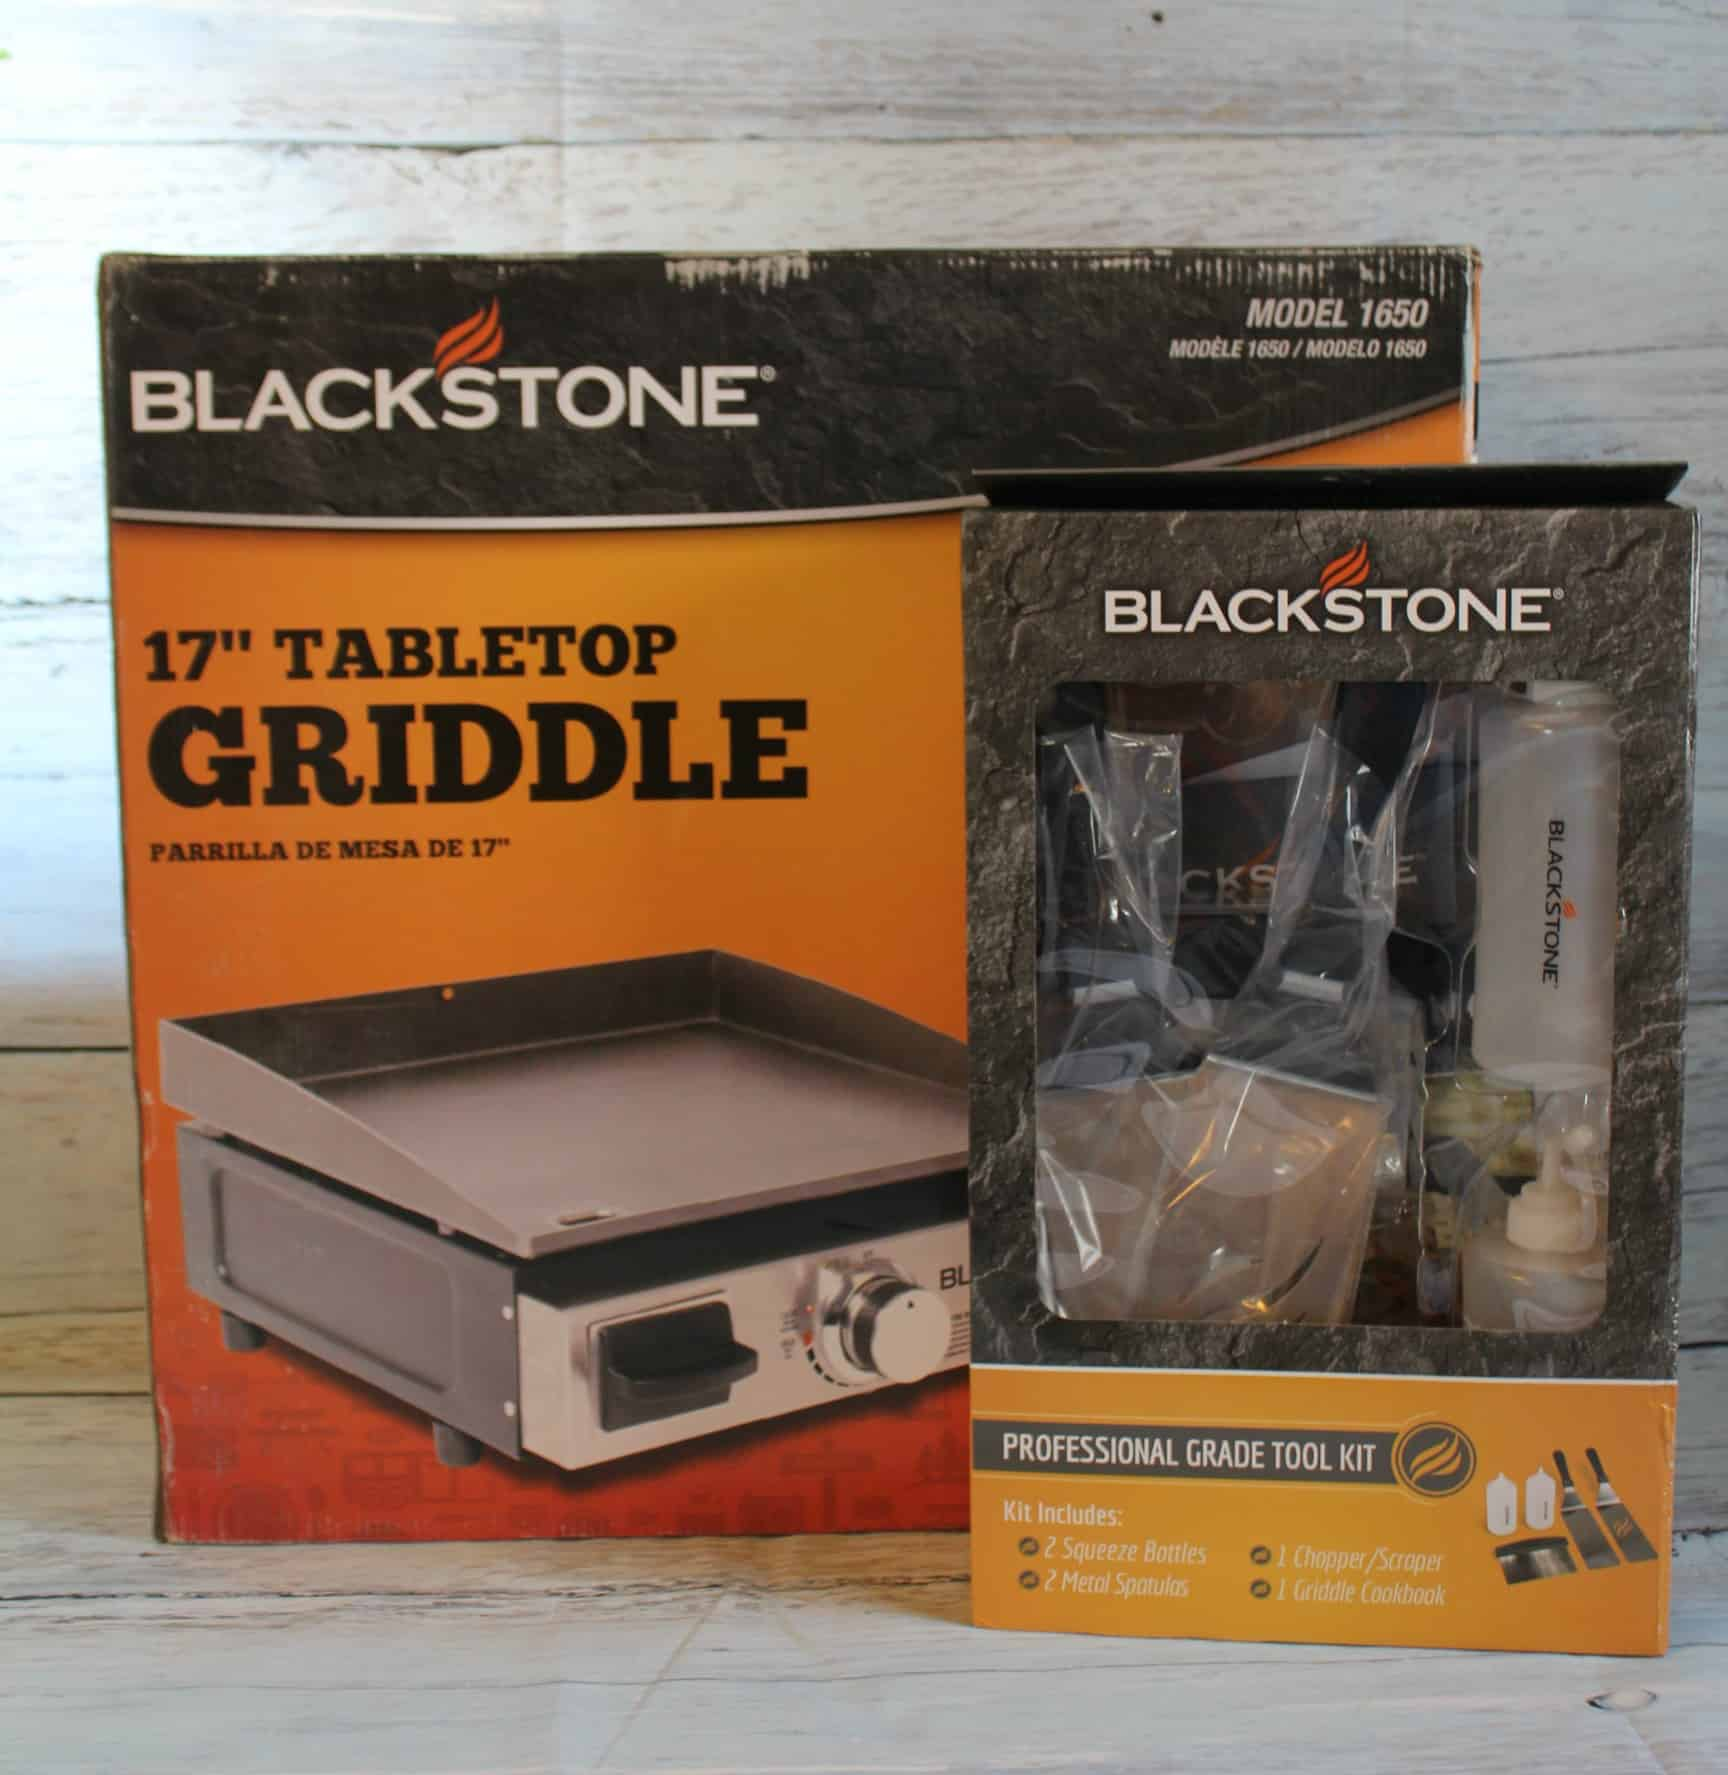 Blackstone Tabletop Griddle is the Best to have for tailgating